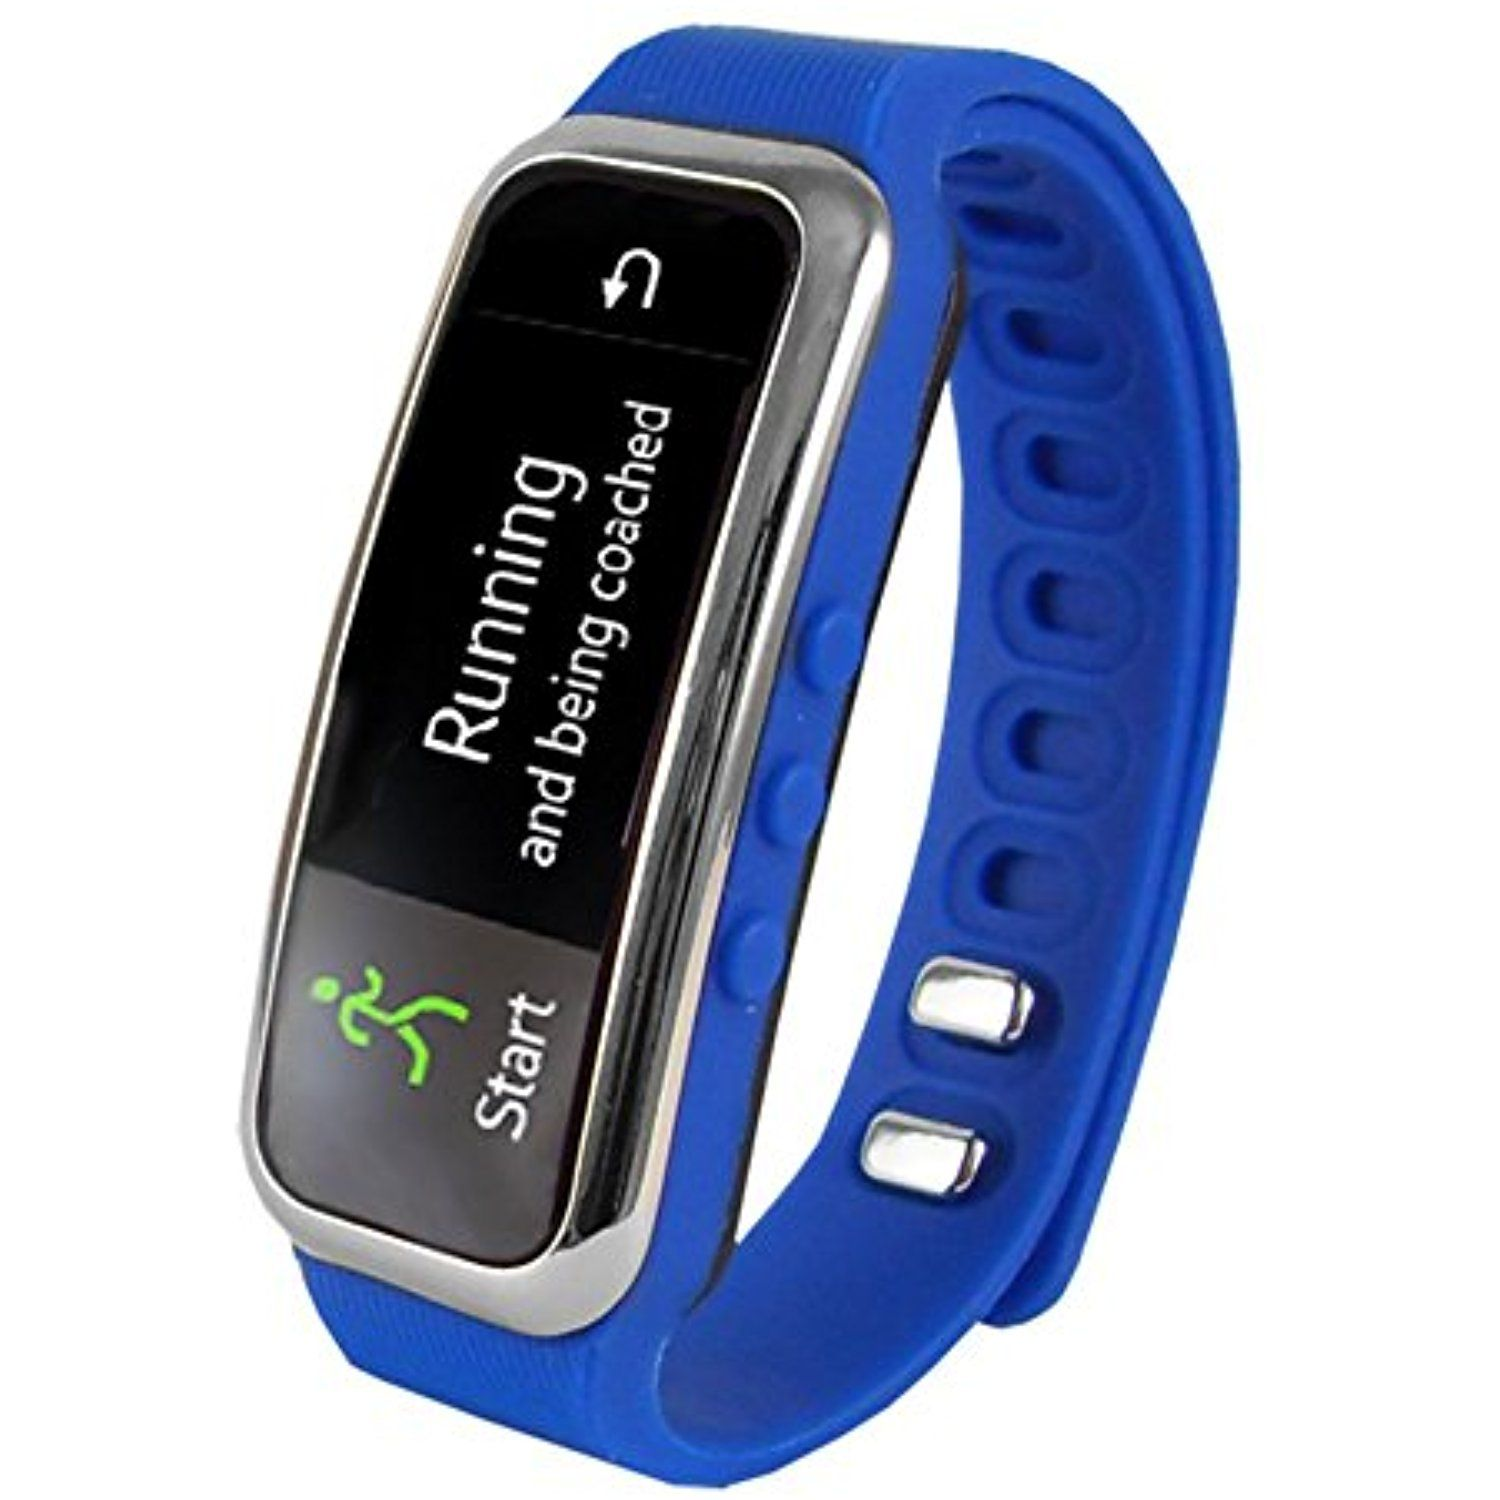 Supersonic 0.91 Fitness Wristband With Bluetooth Pedometer